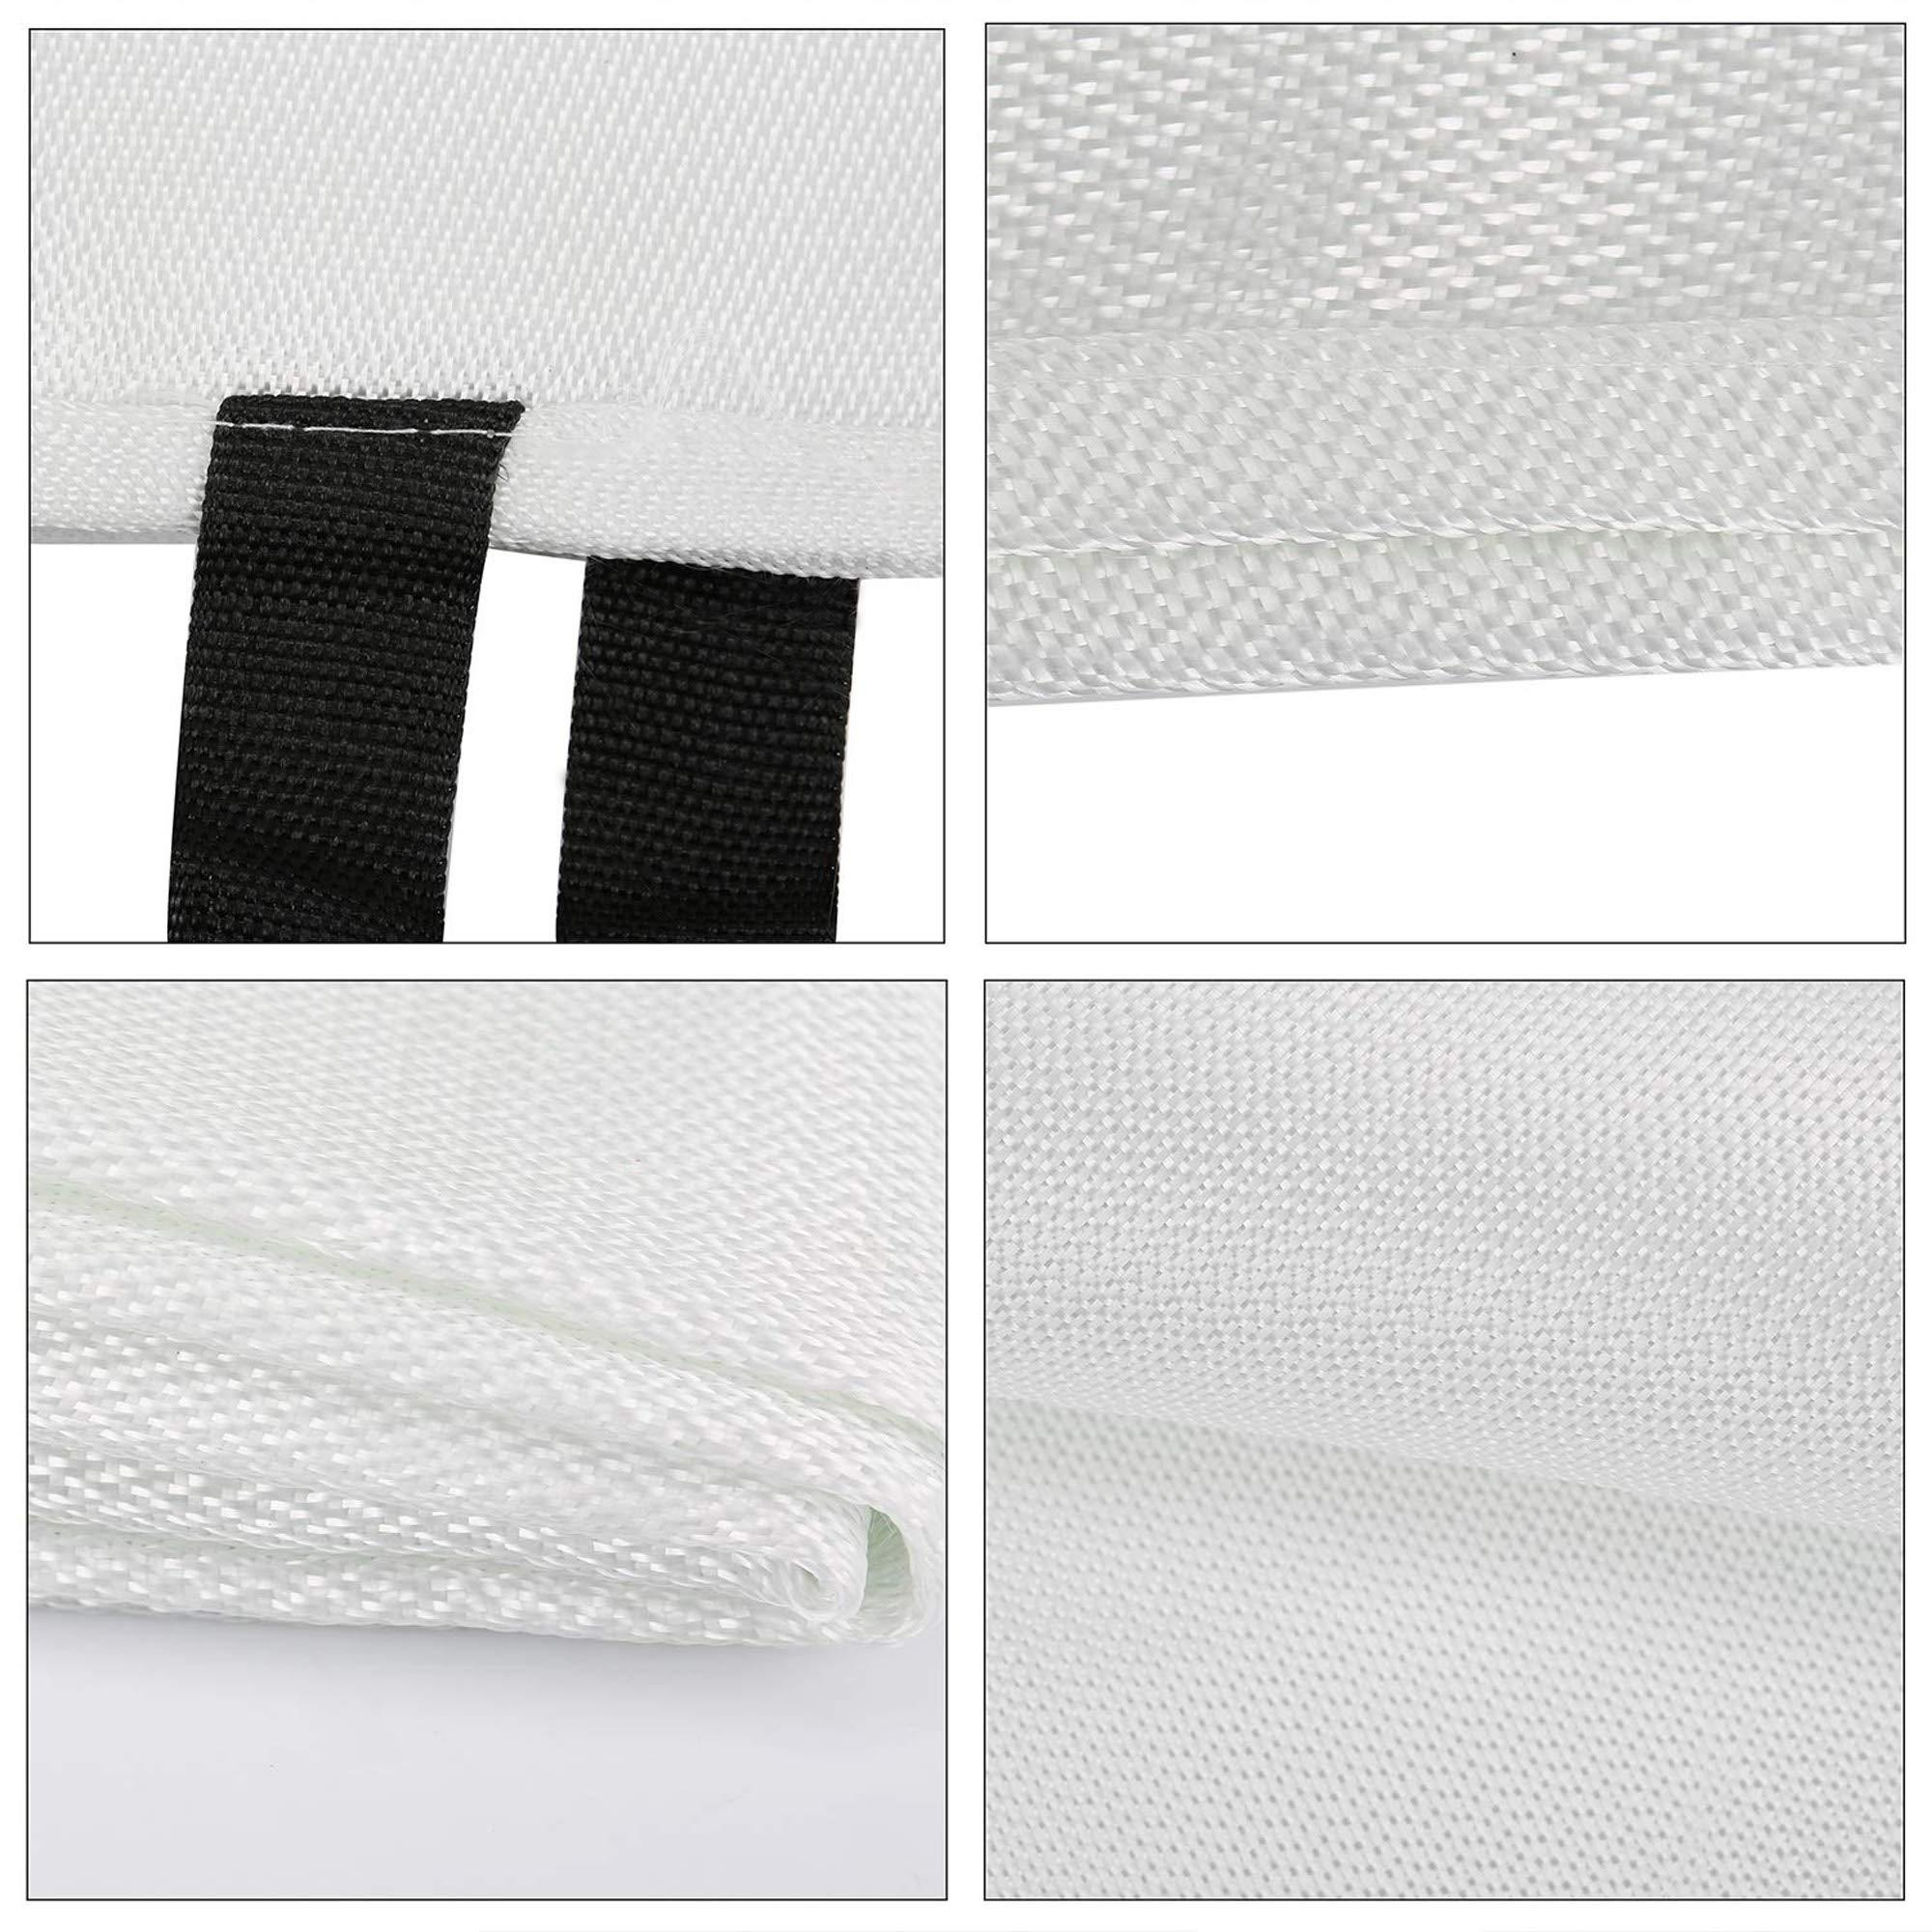 39.3/×39.3 Inches Tonyko/® Fiberglass Fire Blanket 70.9/×70.9 Inches 47.2/×47.2 Inches 39.3/×39.3 Inches S 59/×59 Inches